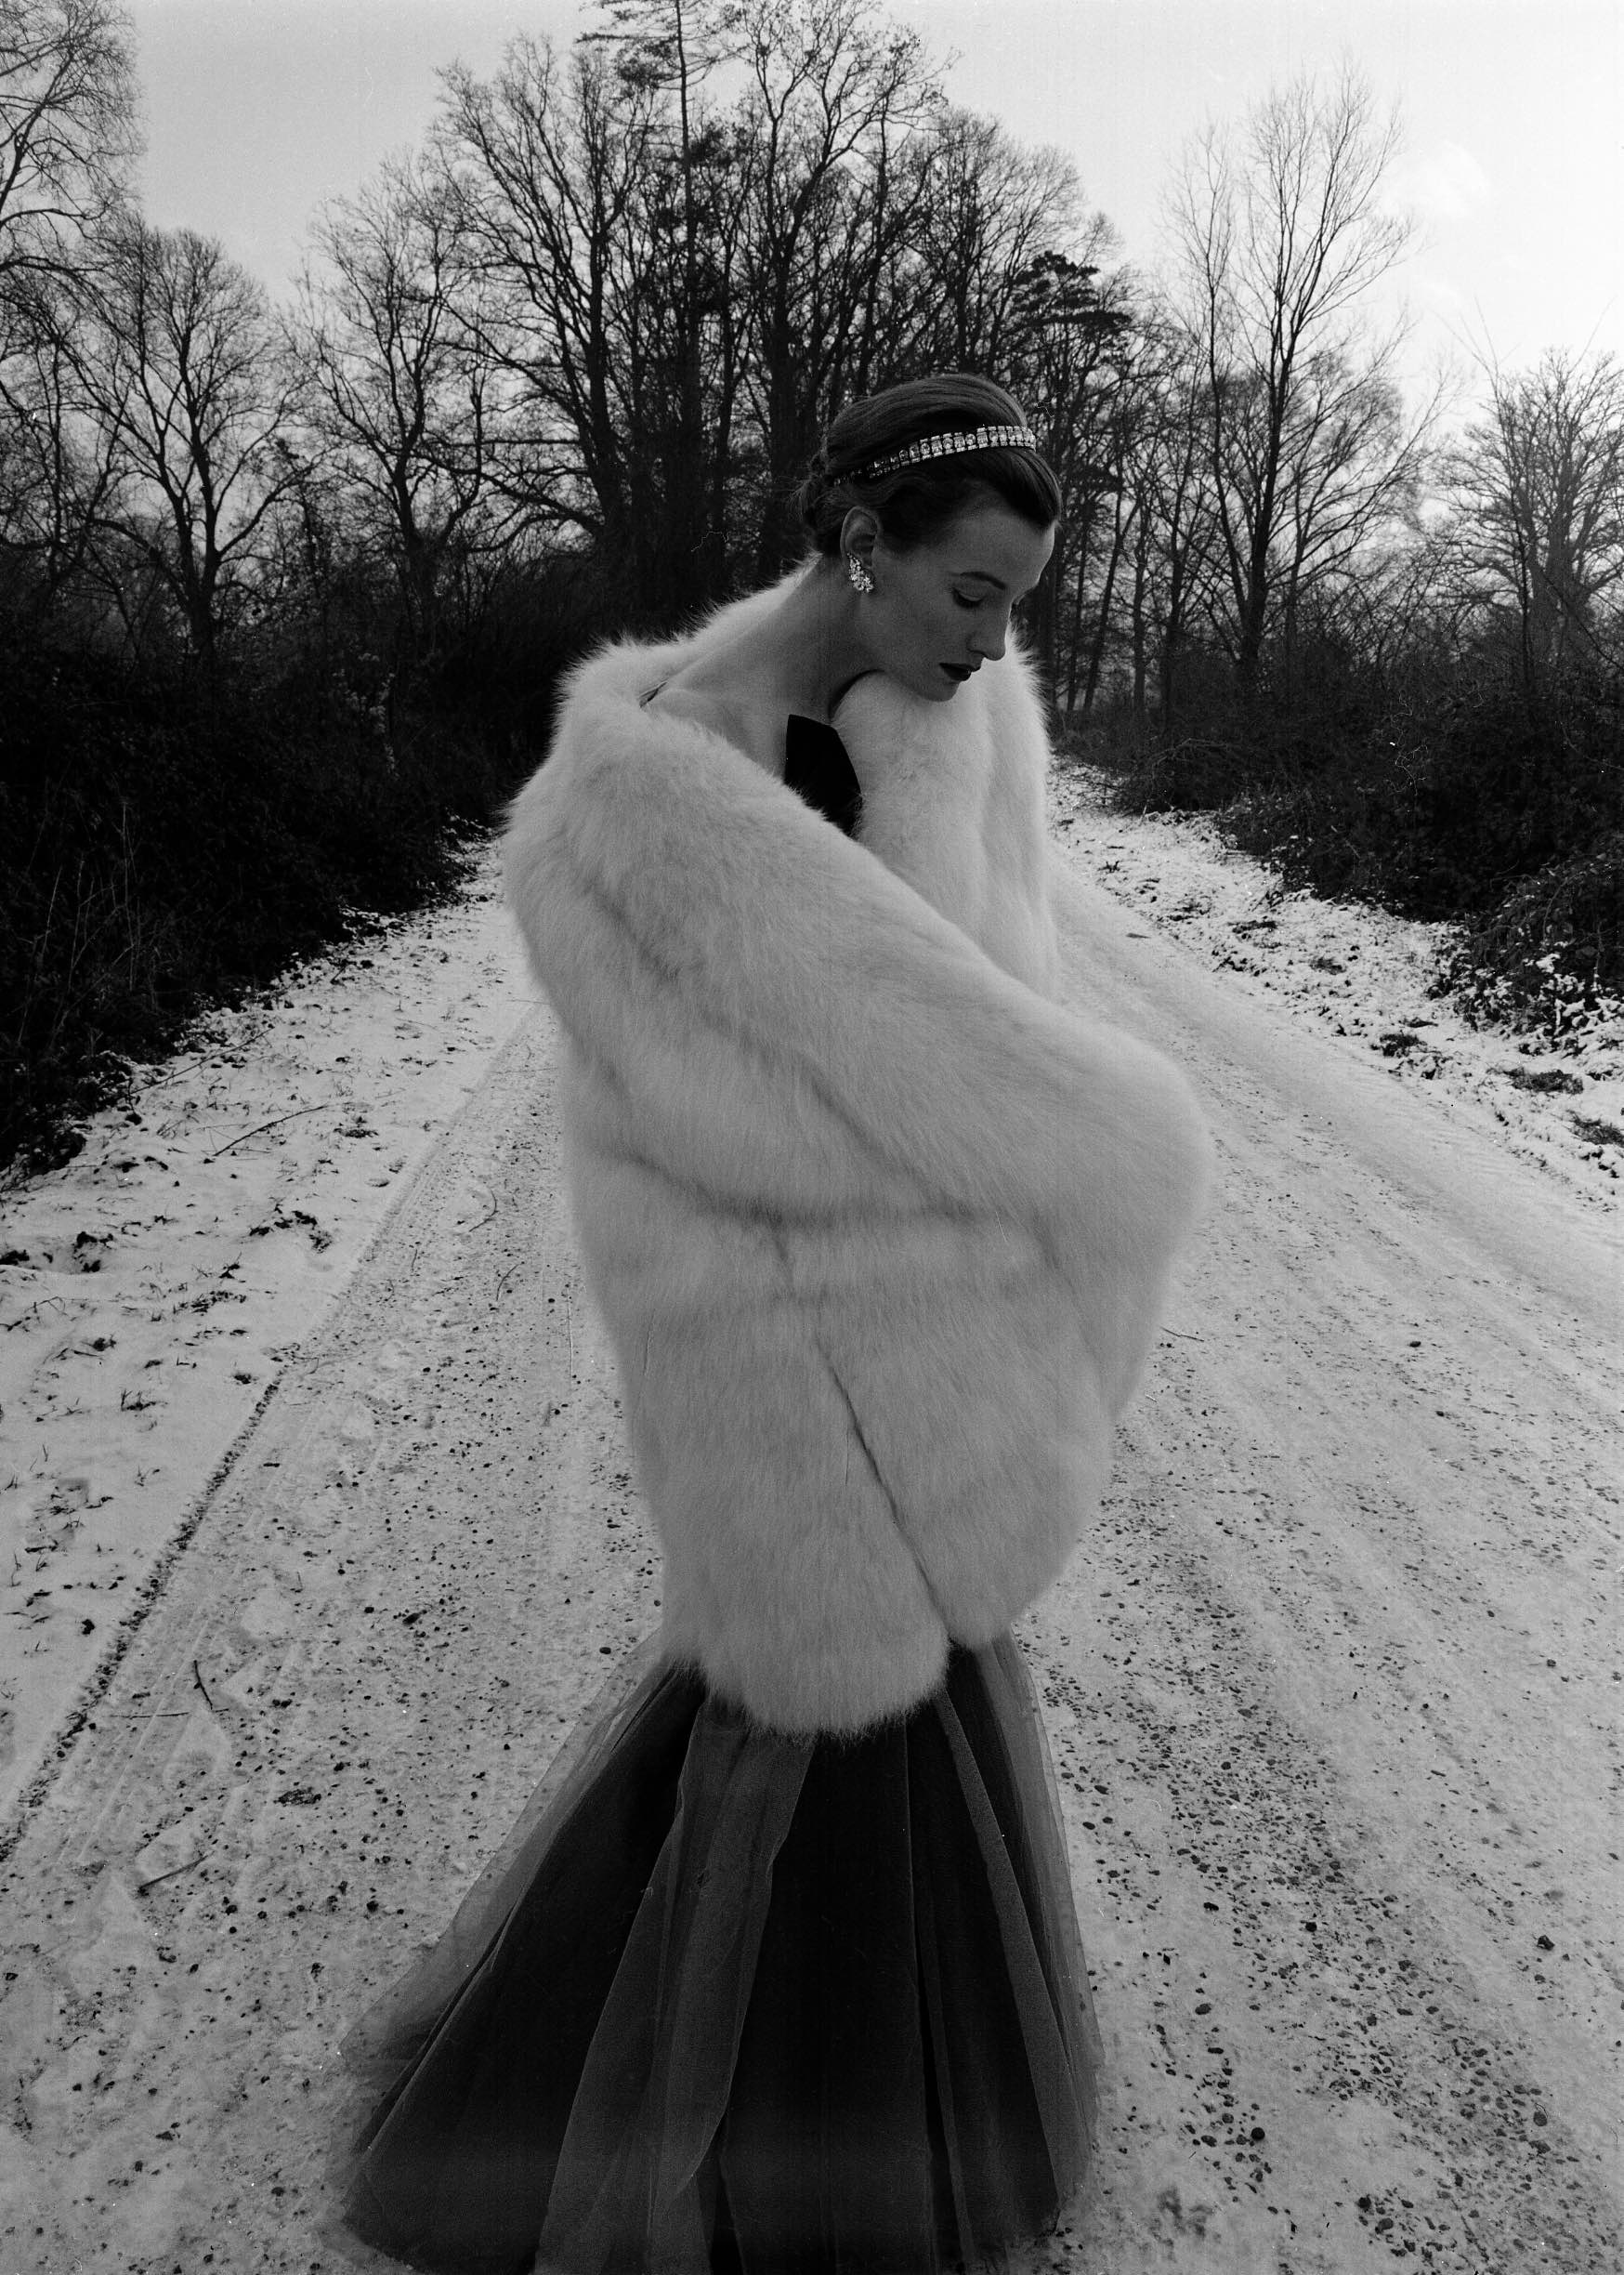 Wenda in Fur for Vogue Magazine, 1950